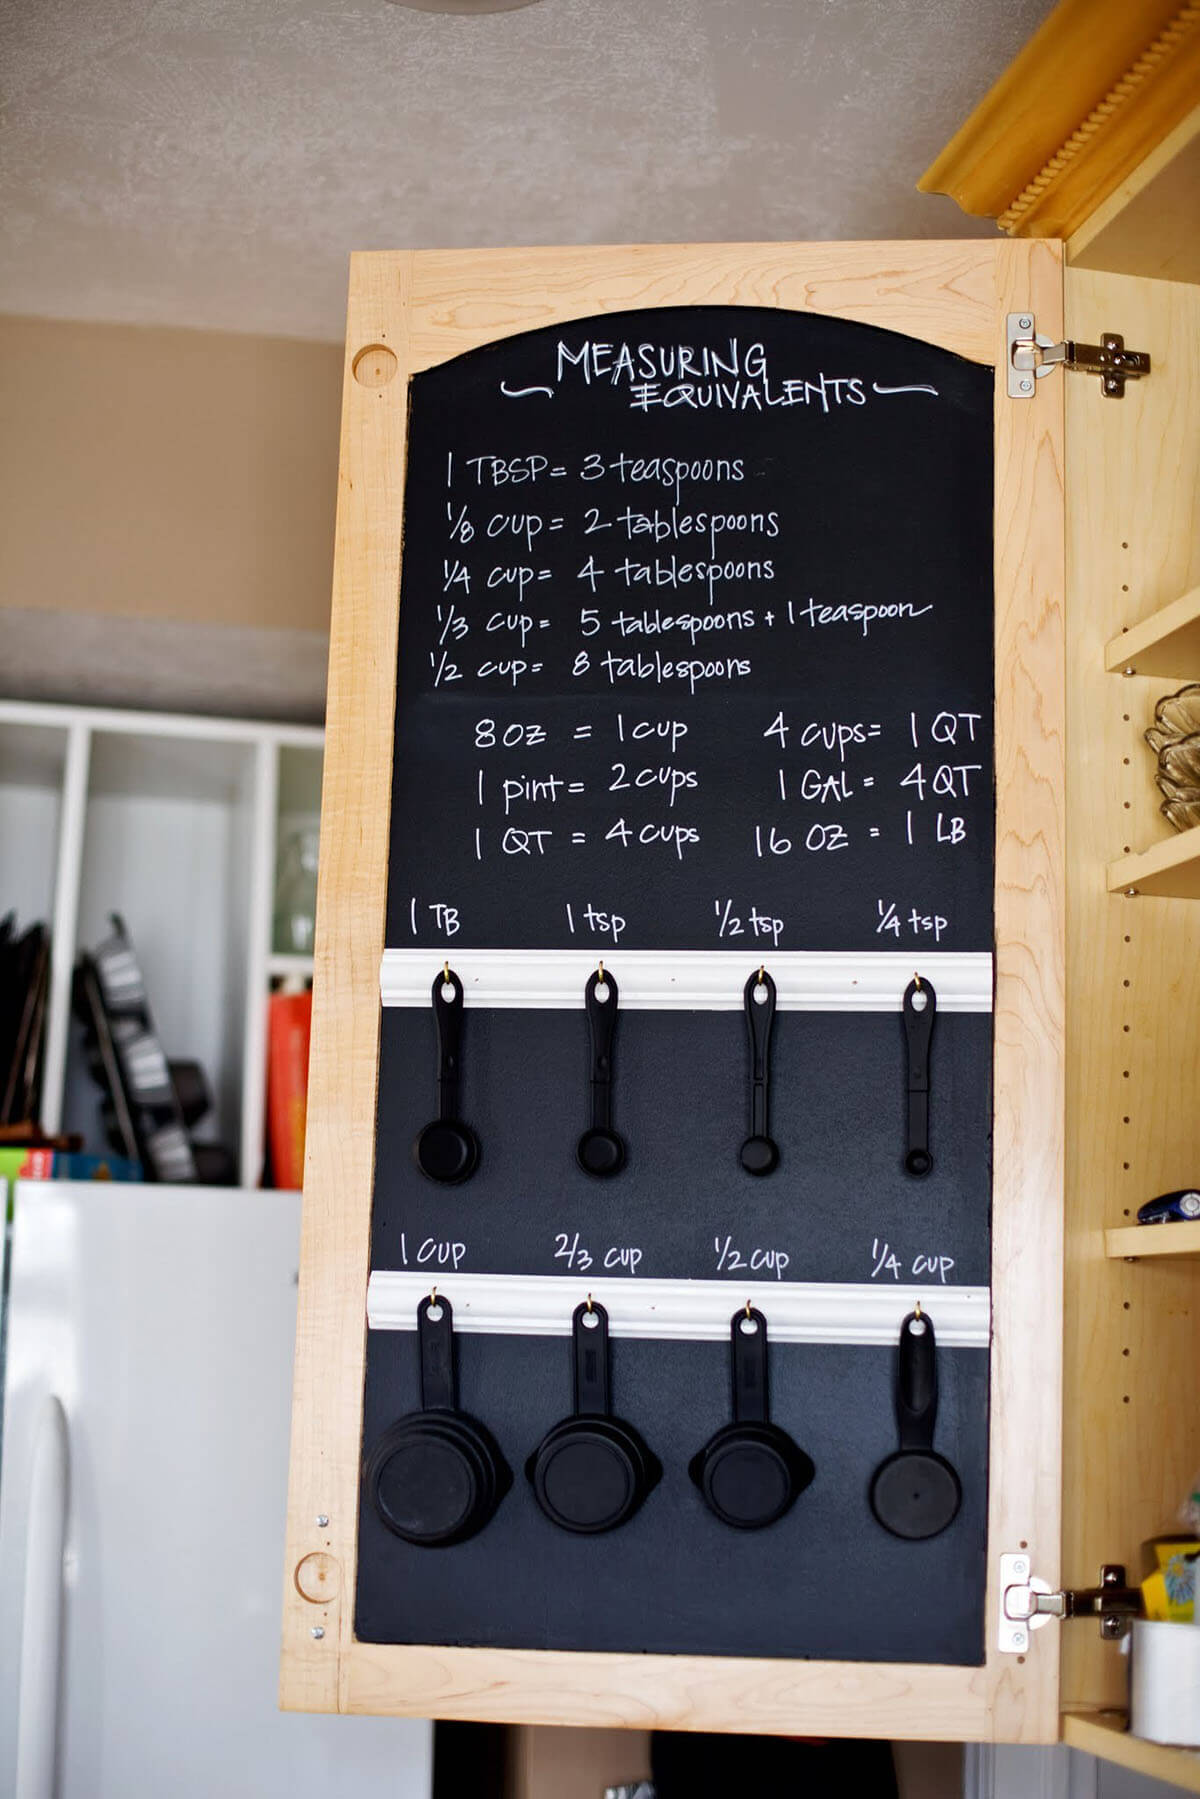 Cabinet Door Chalkboard with Measuring Utensils